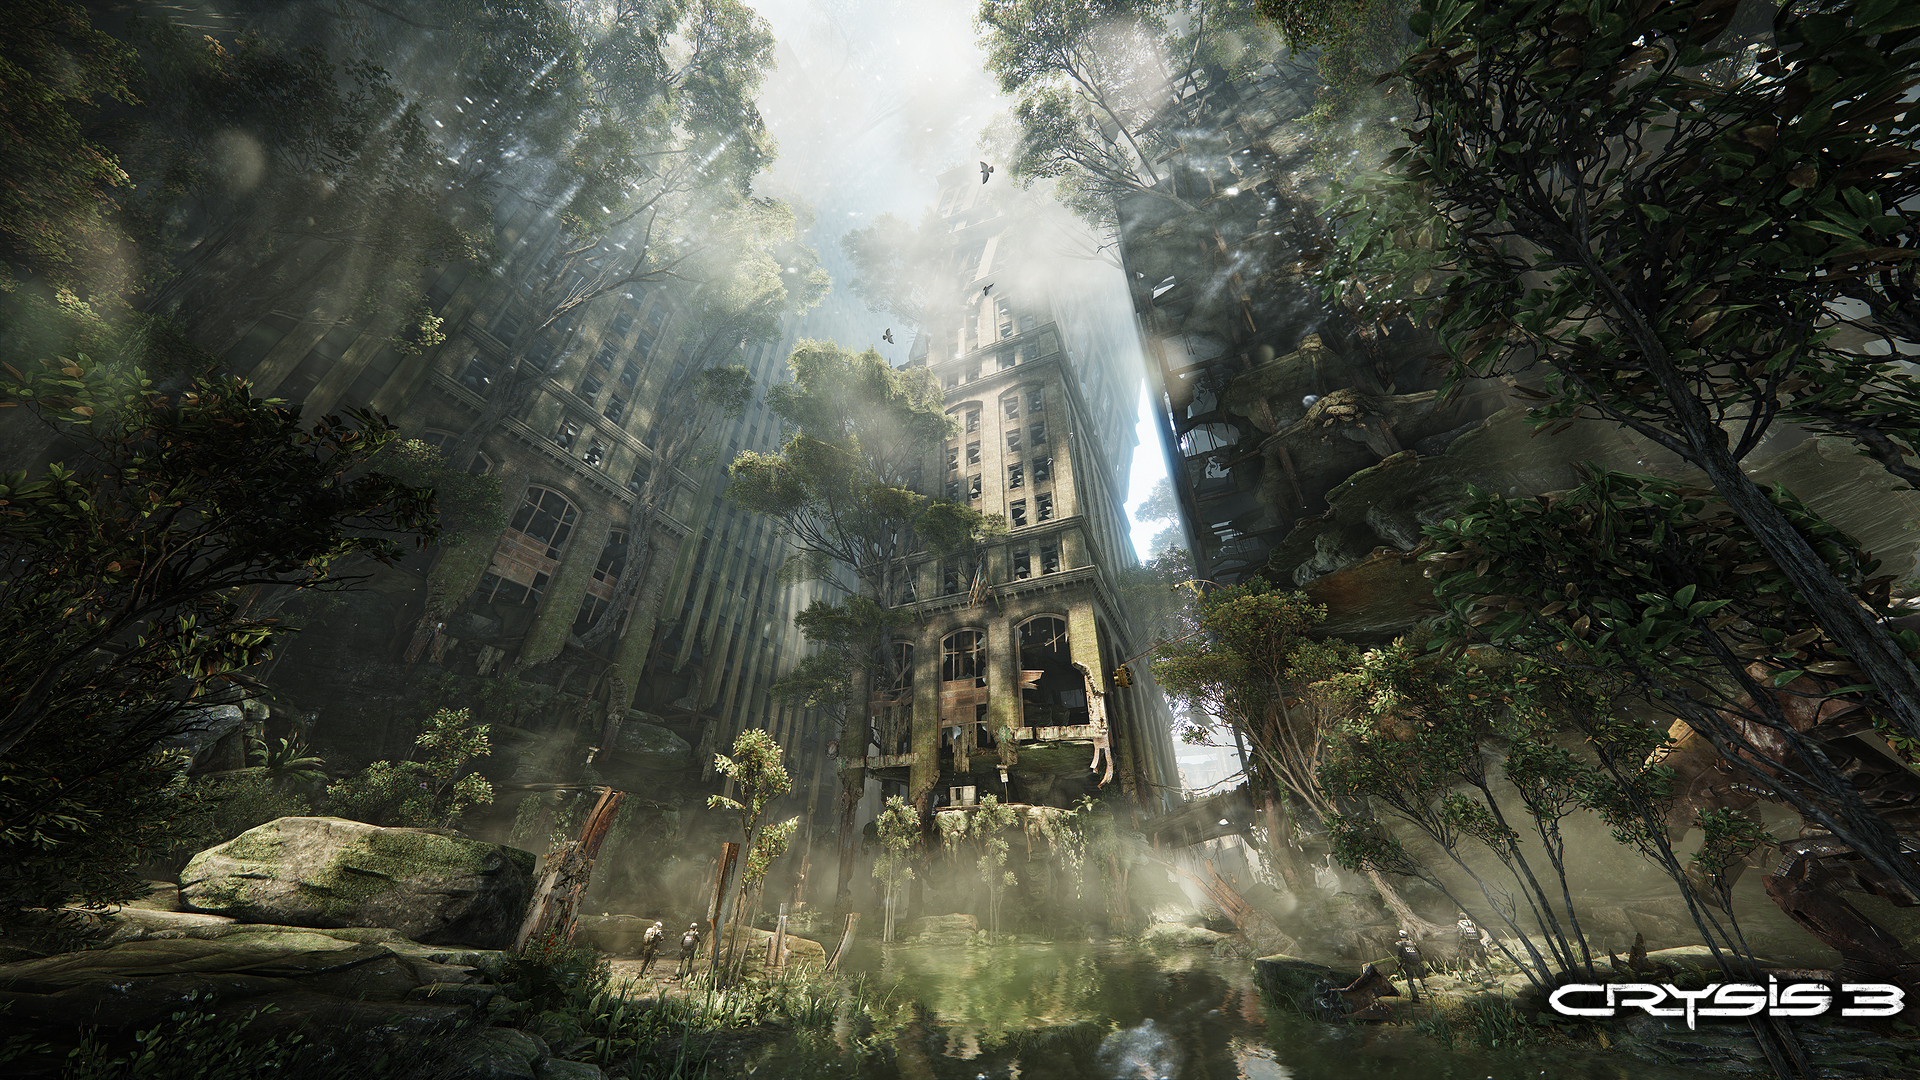 http://www.dsogaming.com/wp-content/uploads/2012/07/Crysis3_Canyon_WP1920x1080.png